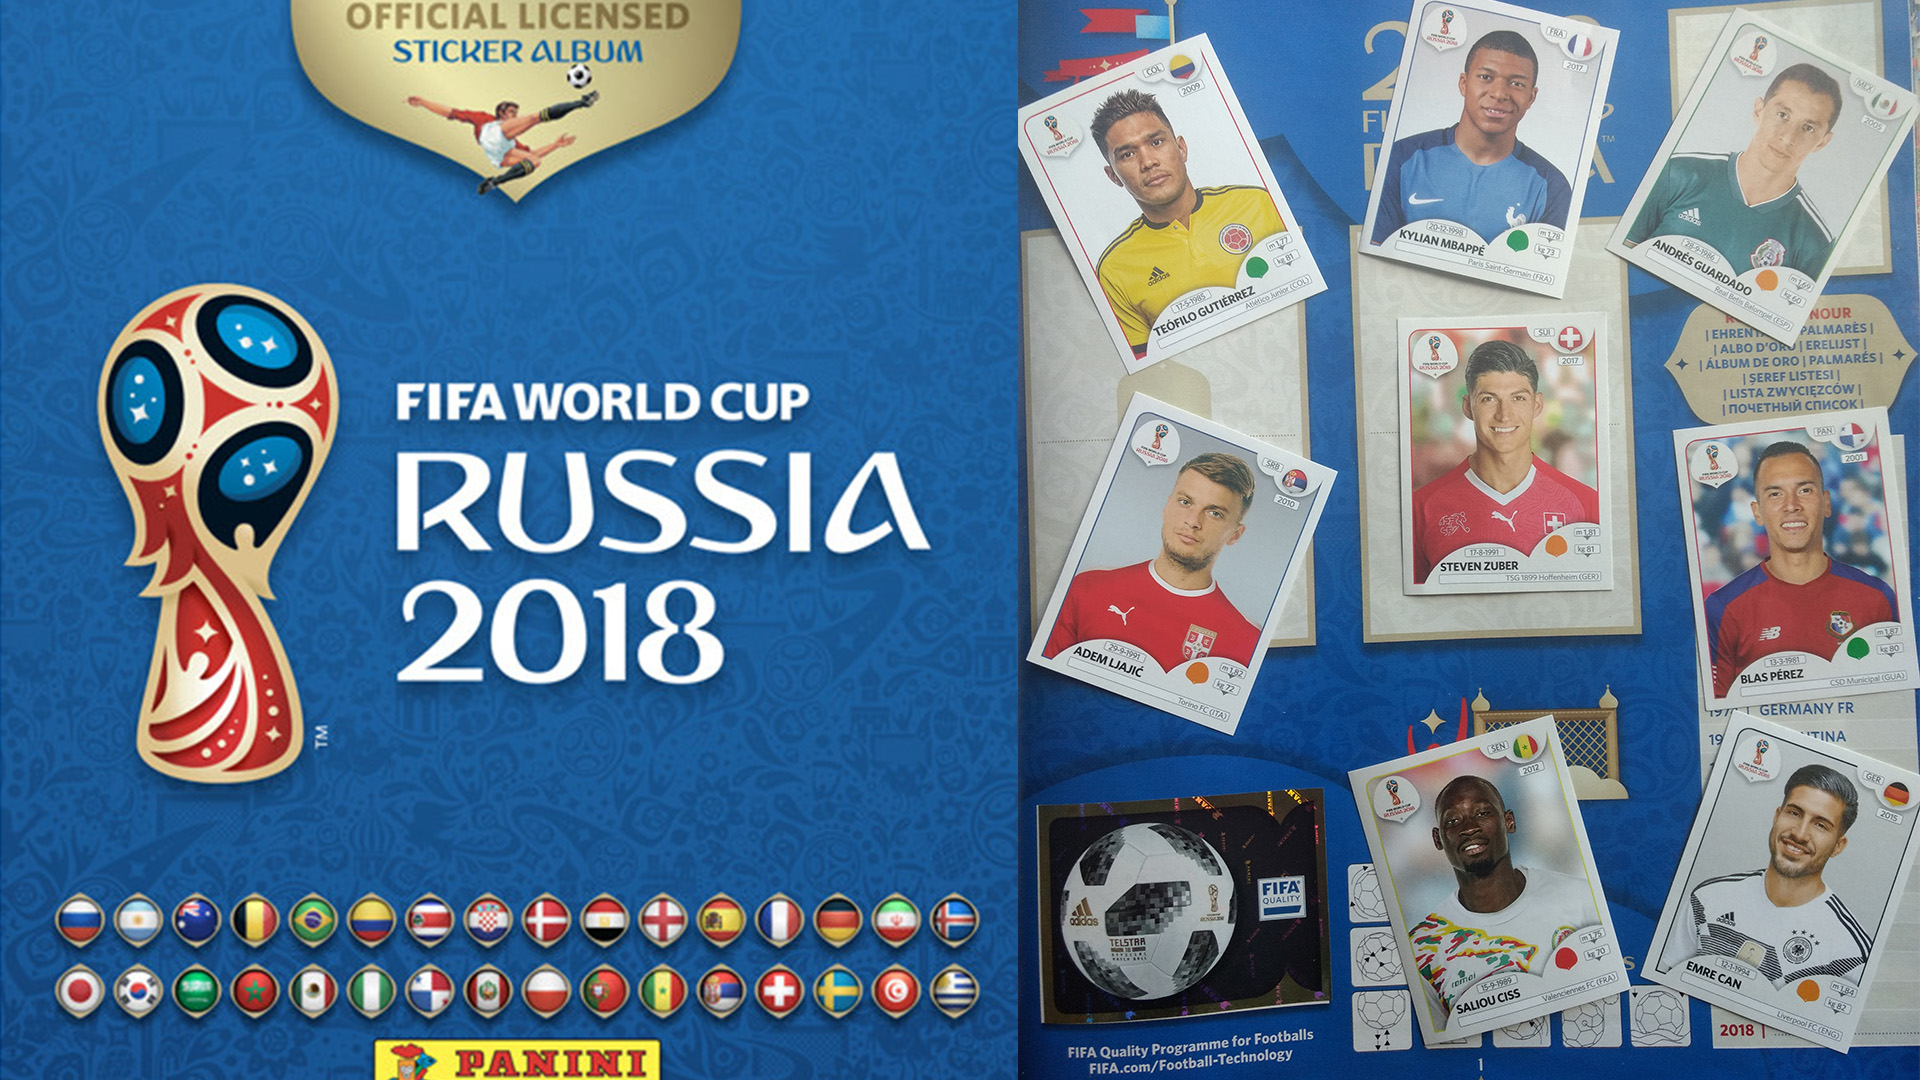 Iran Sticker 176 Vouria Ghafouri Panini WM 2018 World Cup Russia